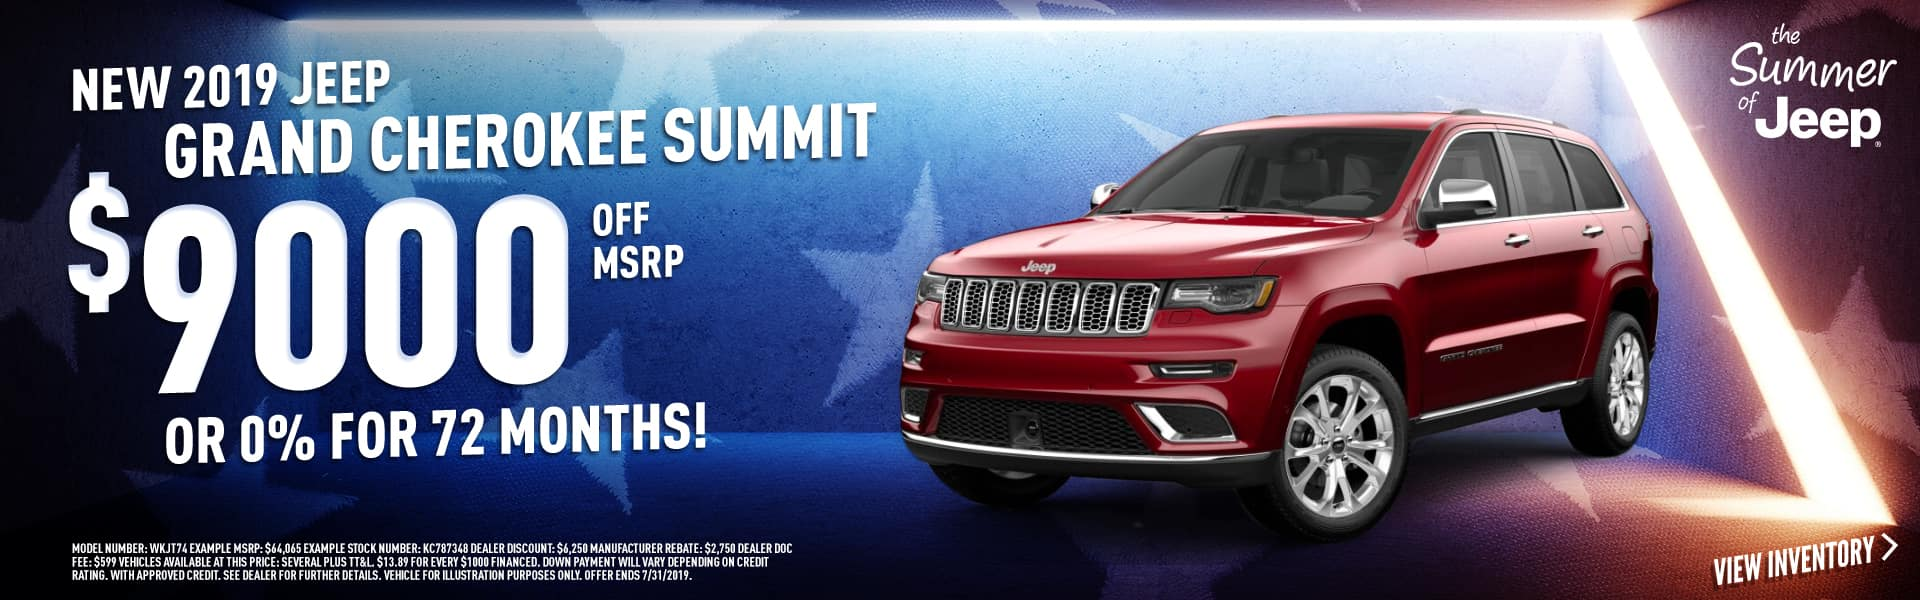 2019-Jeep-Grand-Cherokee-Summit